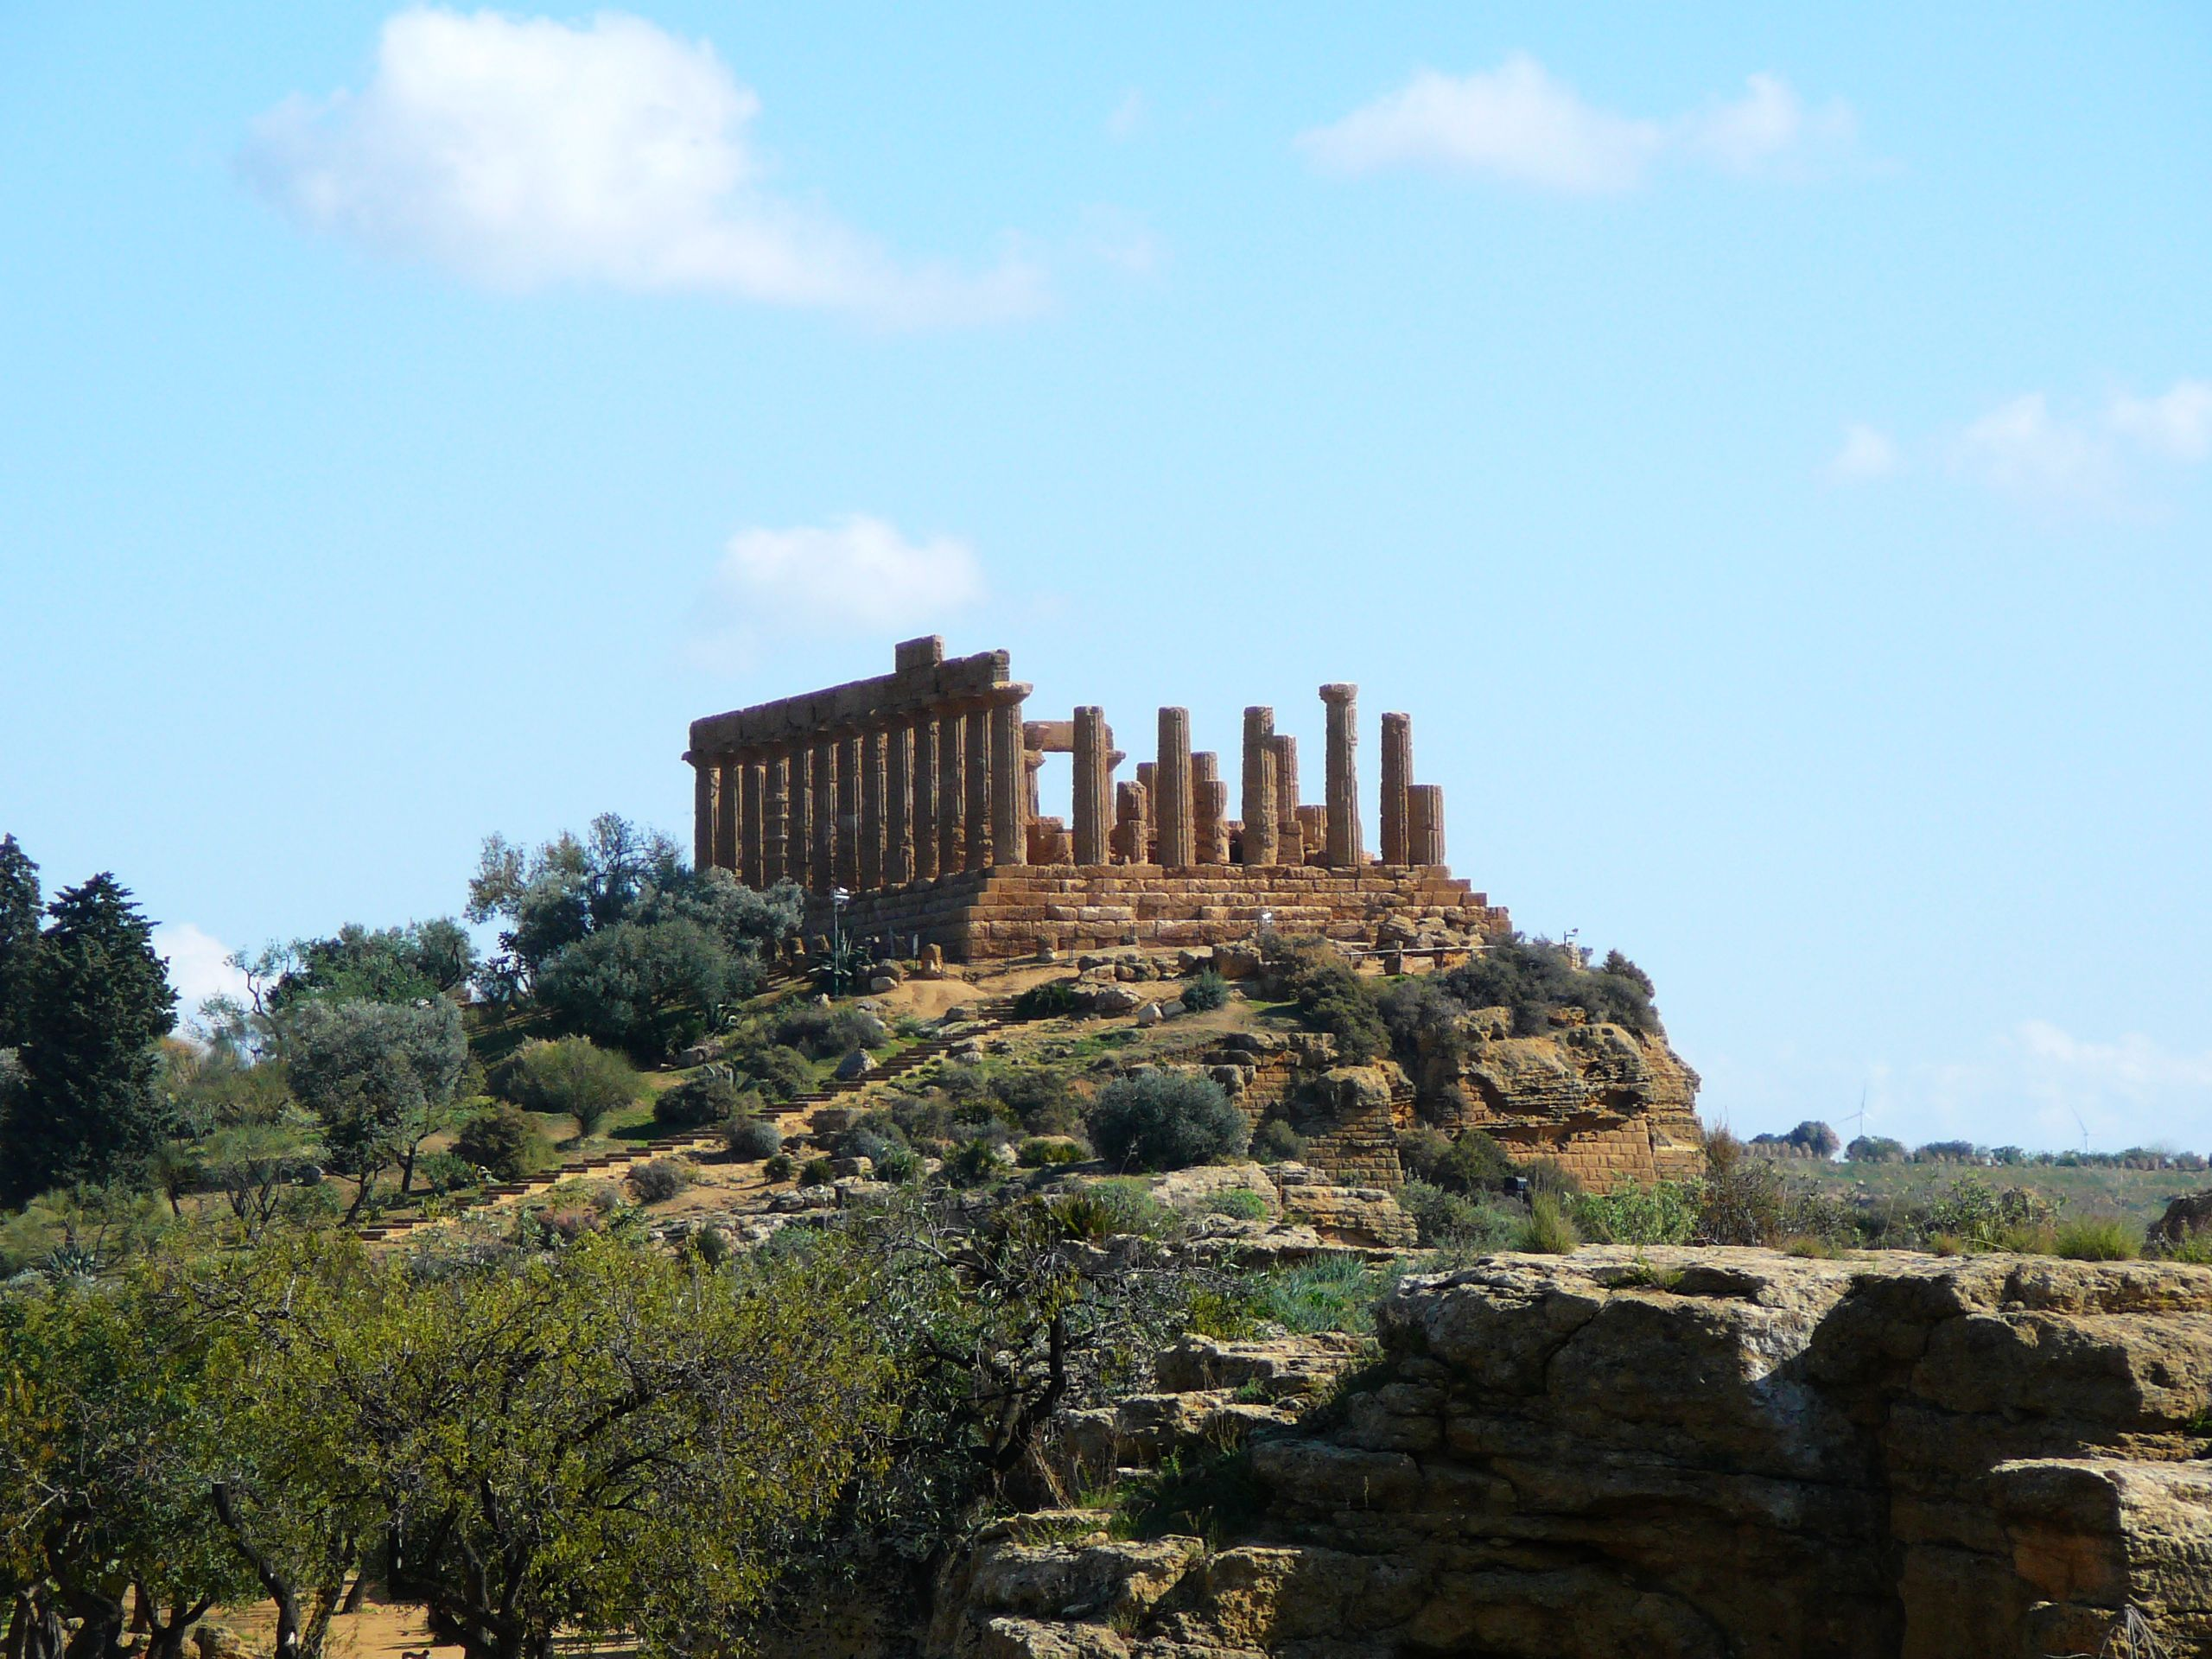 Agrigento Italy  city photos : Agrigento, Italy. Temple of Hera 01 Wikipedia, the free ...